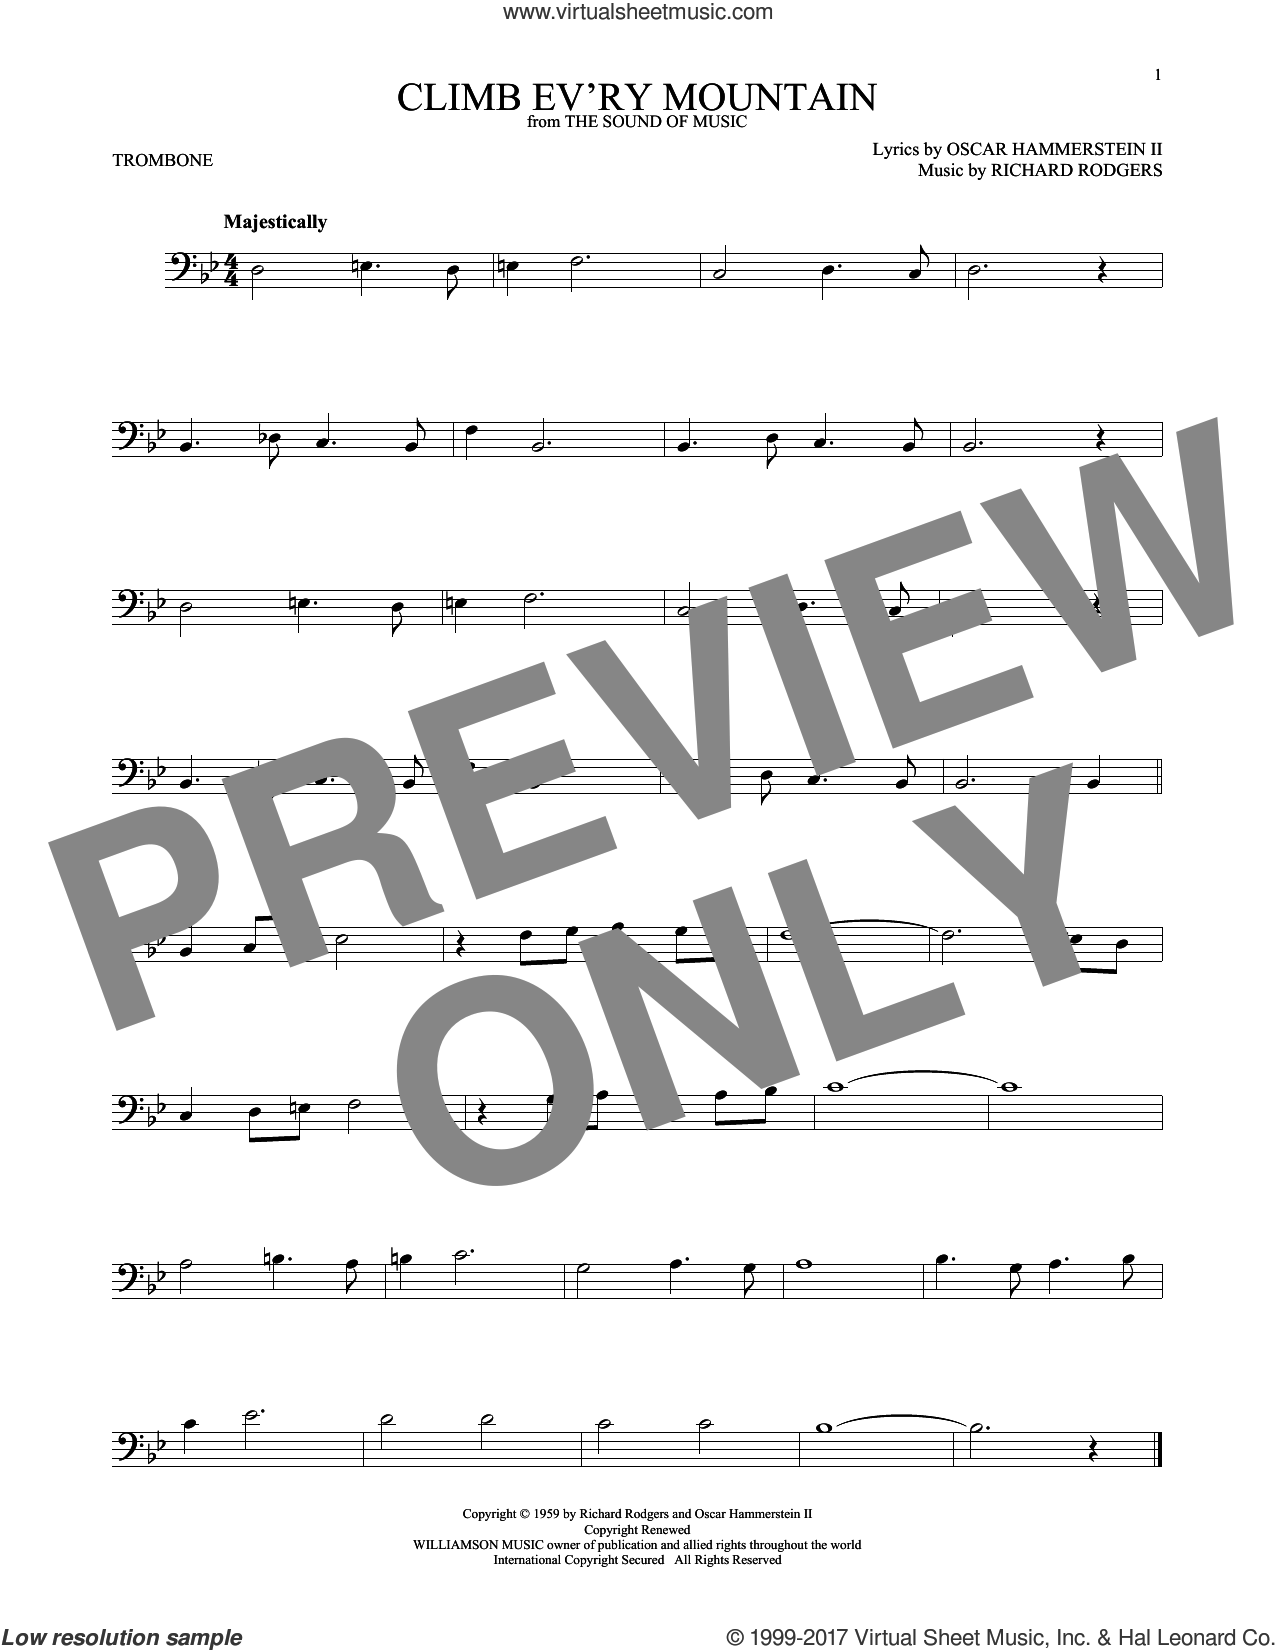 Climb Ev'ry Mountain sheet music for trombone solo by Rodgers & Hammerstein, Oscar II Hammerstein and Richard Rodgers, intermediate skill level